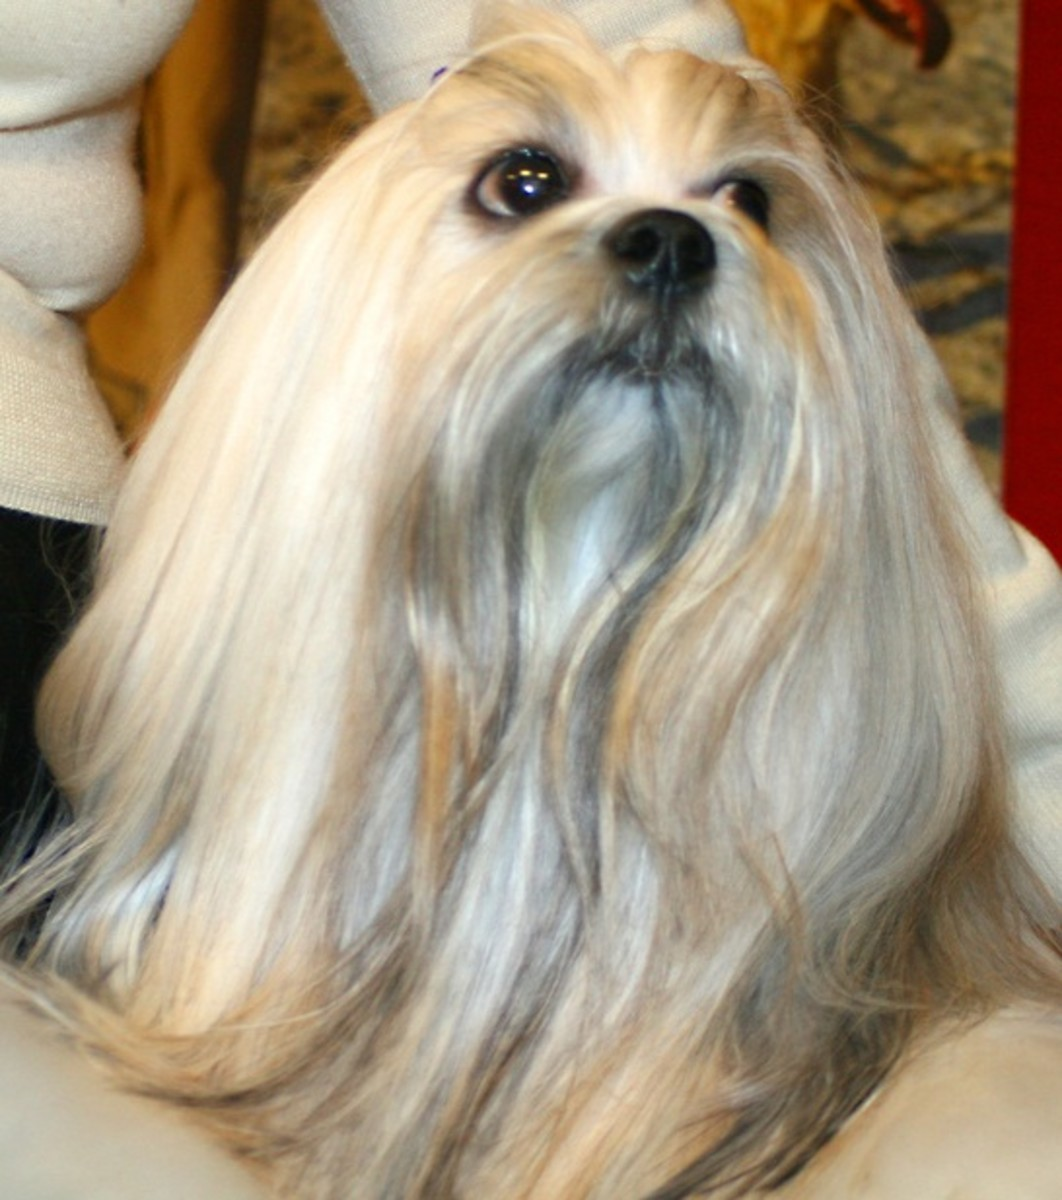 Lhasa apso make good watchdogs even when resting on a lap.